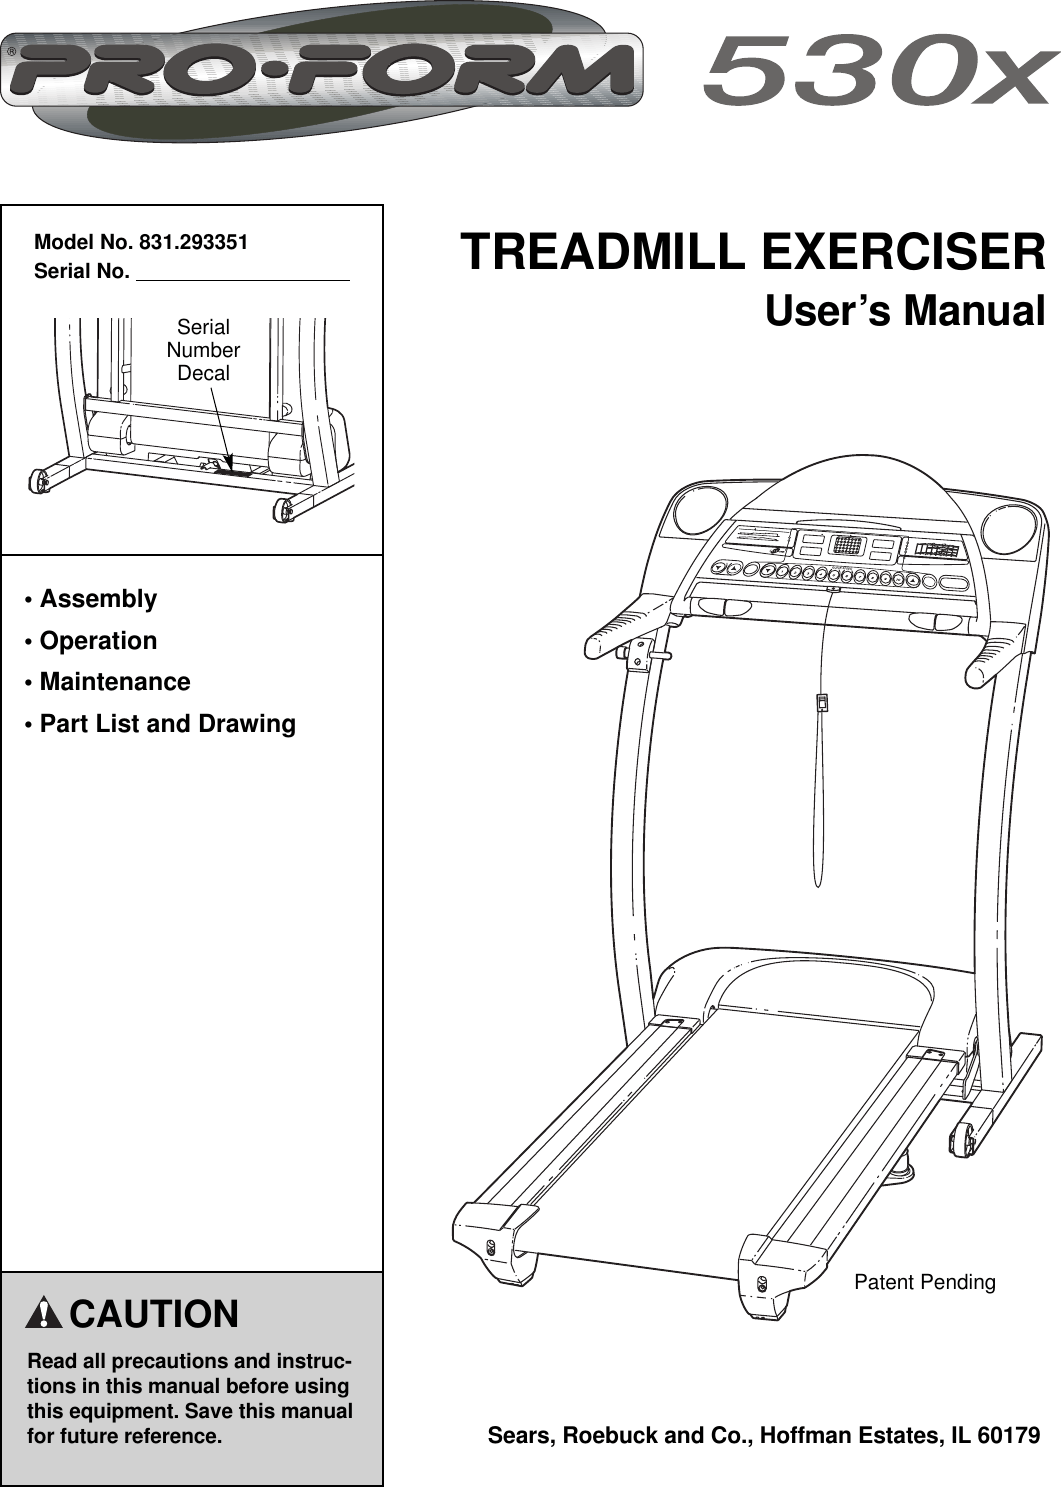 Proform 530x Treadmill Manual